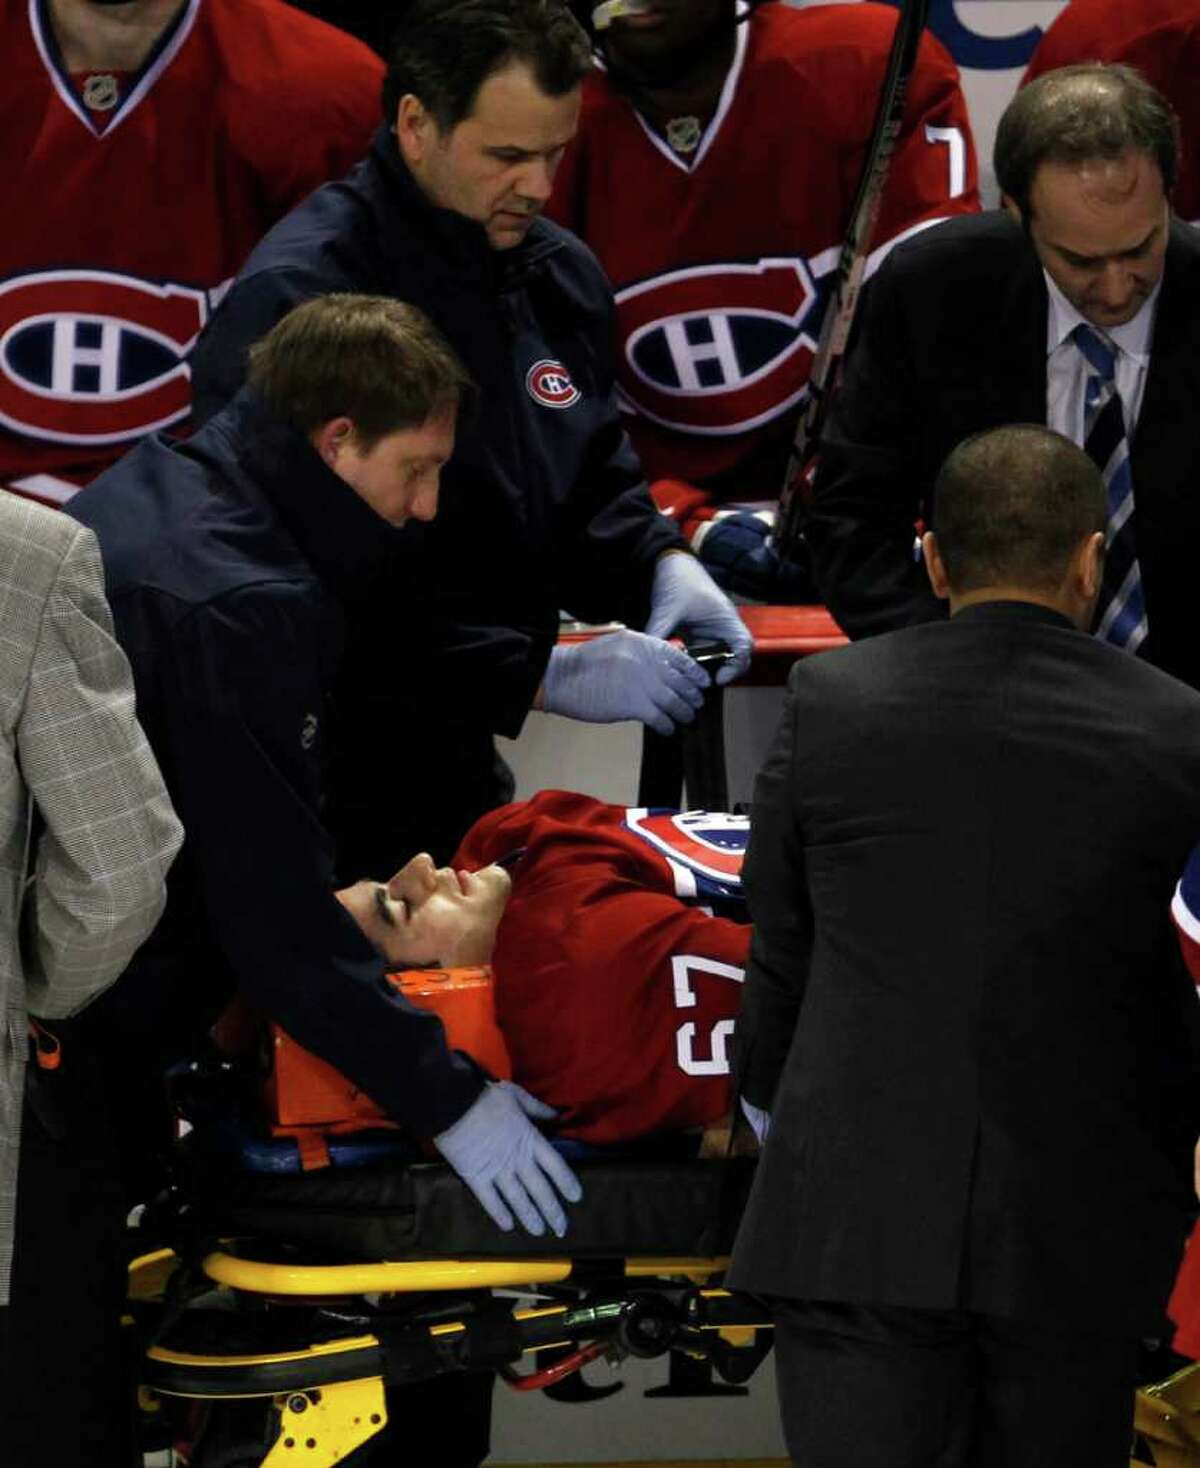 Montreal Canadiens' Max Pacioretty is wheeled away on a stretcher after taking a hit by Boston Bruins' Zdeno Chara during the second period of an NHL hockey game, Tuesday, March 8, 2011, in Montreal.